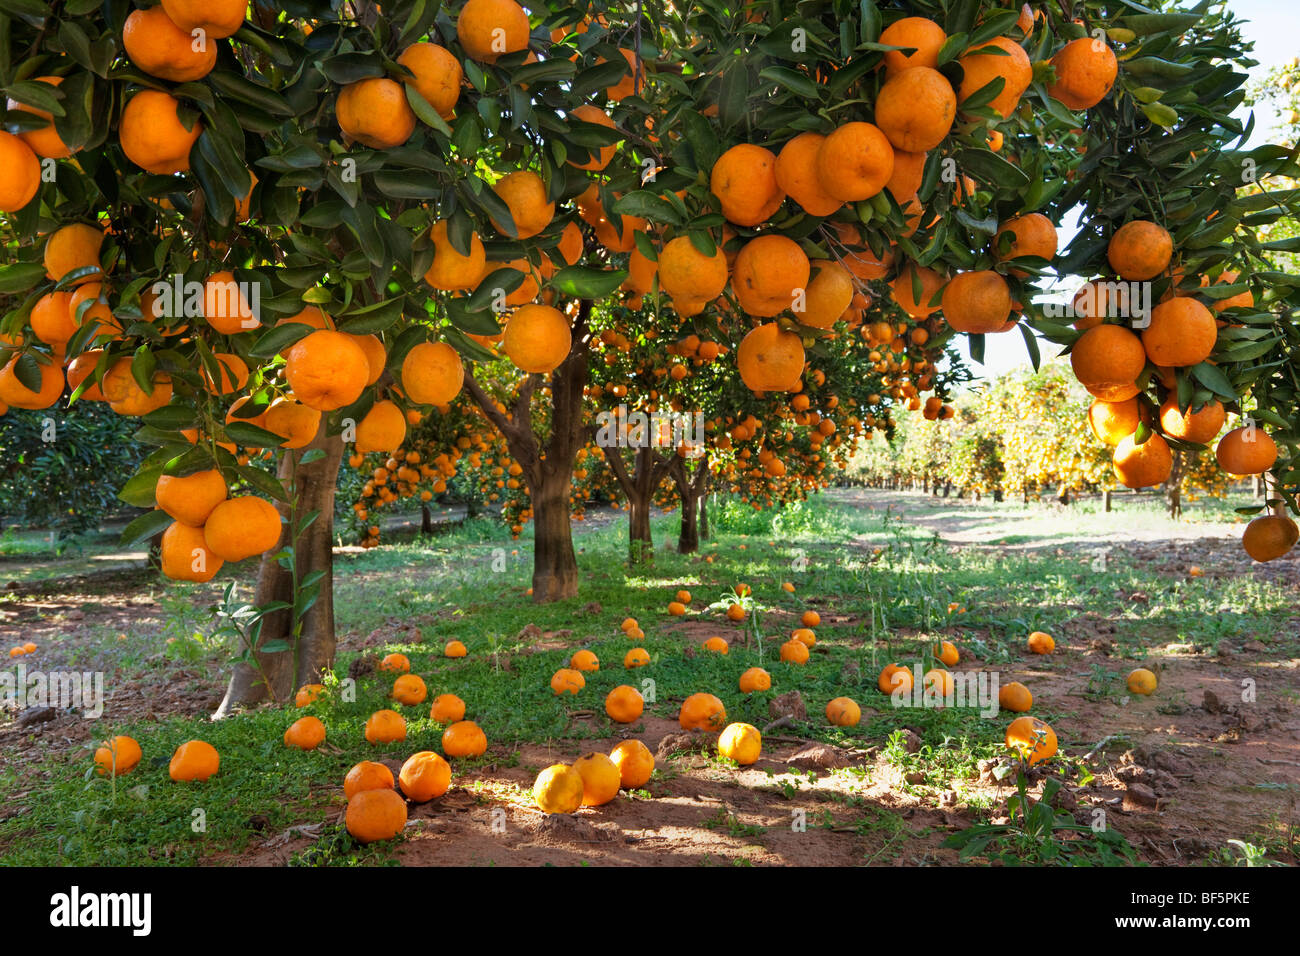 Orange beladenen Obstbäumen in einem Obstgarten Stockbild